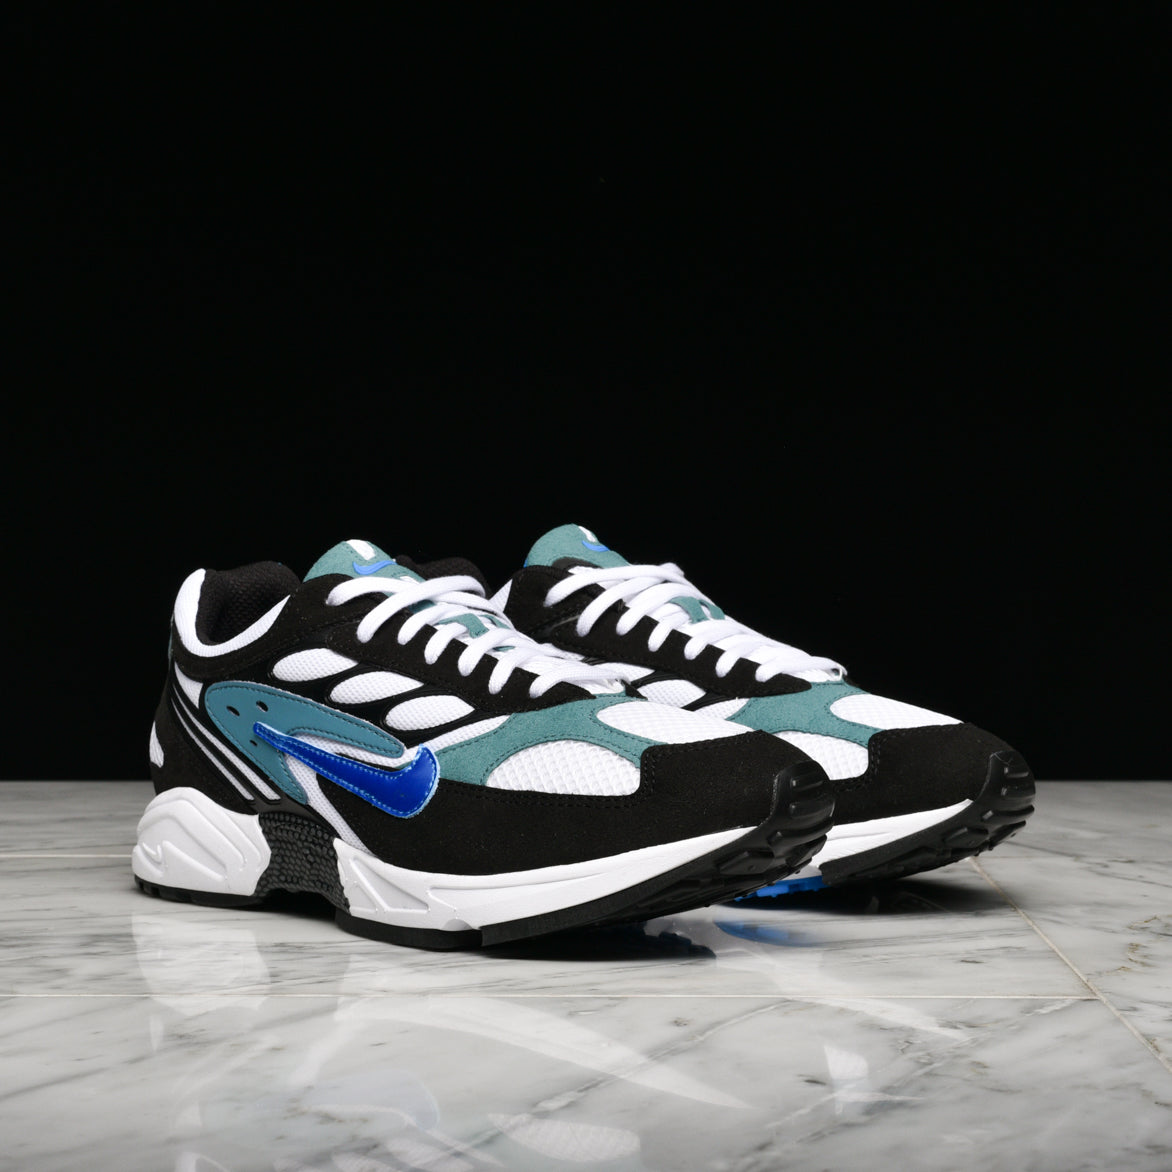 AIR GHOST RACER - BLACK / PHOTO BLUE / MINERAL TEAL